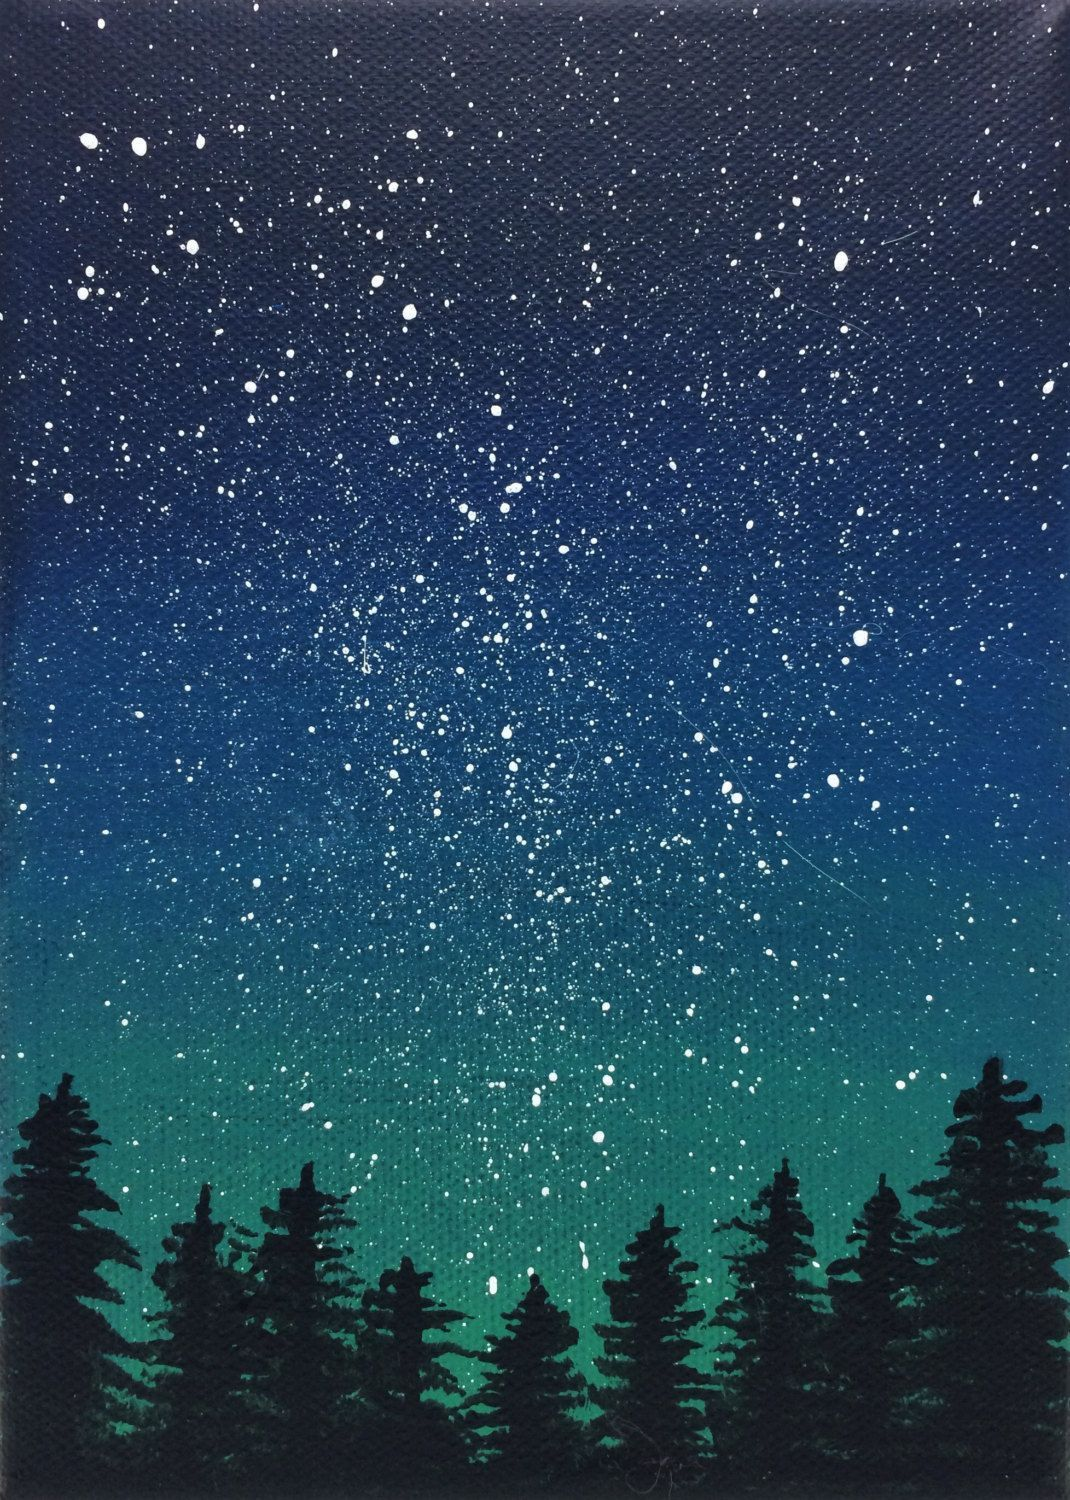 This Stunning Night Sky Scene A Perfect Addition To A Bookshelf Or Small Wall Space Available At Https Www Etsy Com Listing 563721253 Night Sky Painting Starry Goruntuler Ile Tuval